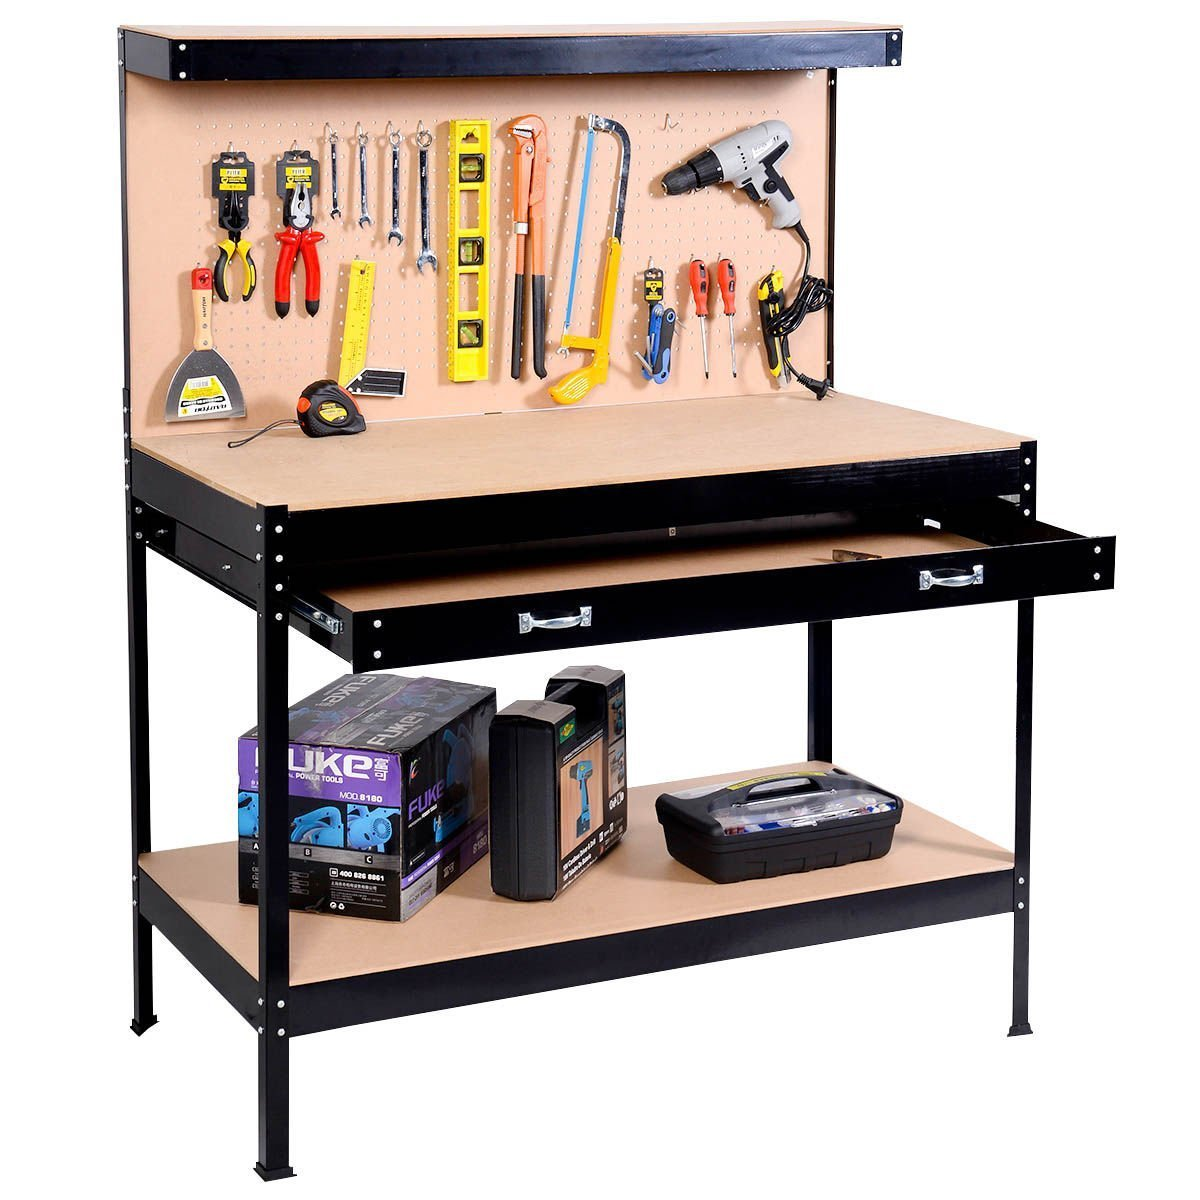 Work Bench Tool Storage Steel Frame Tool Workshop Table W/ Drawer and Peg Boar Bonus free ebook By Allgoodsdelight365 by allgoodsdelight365 (Image #1)